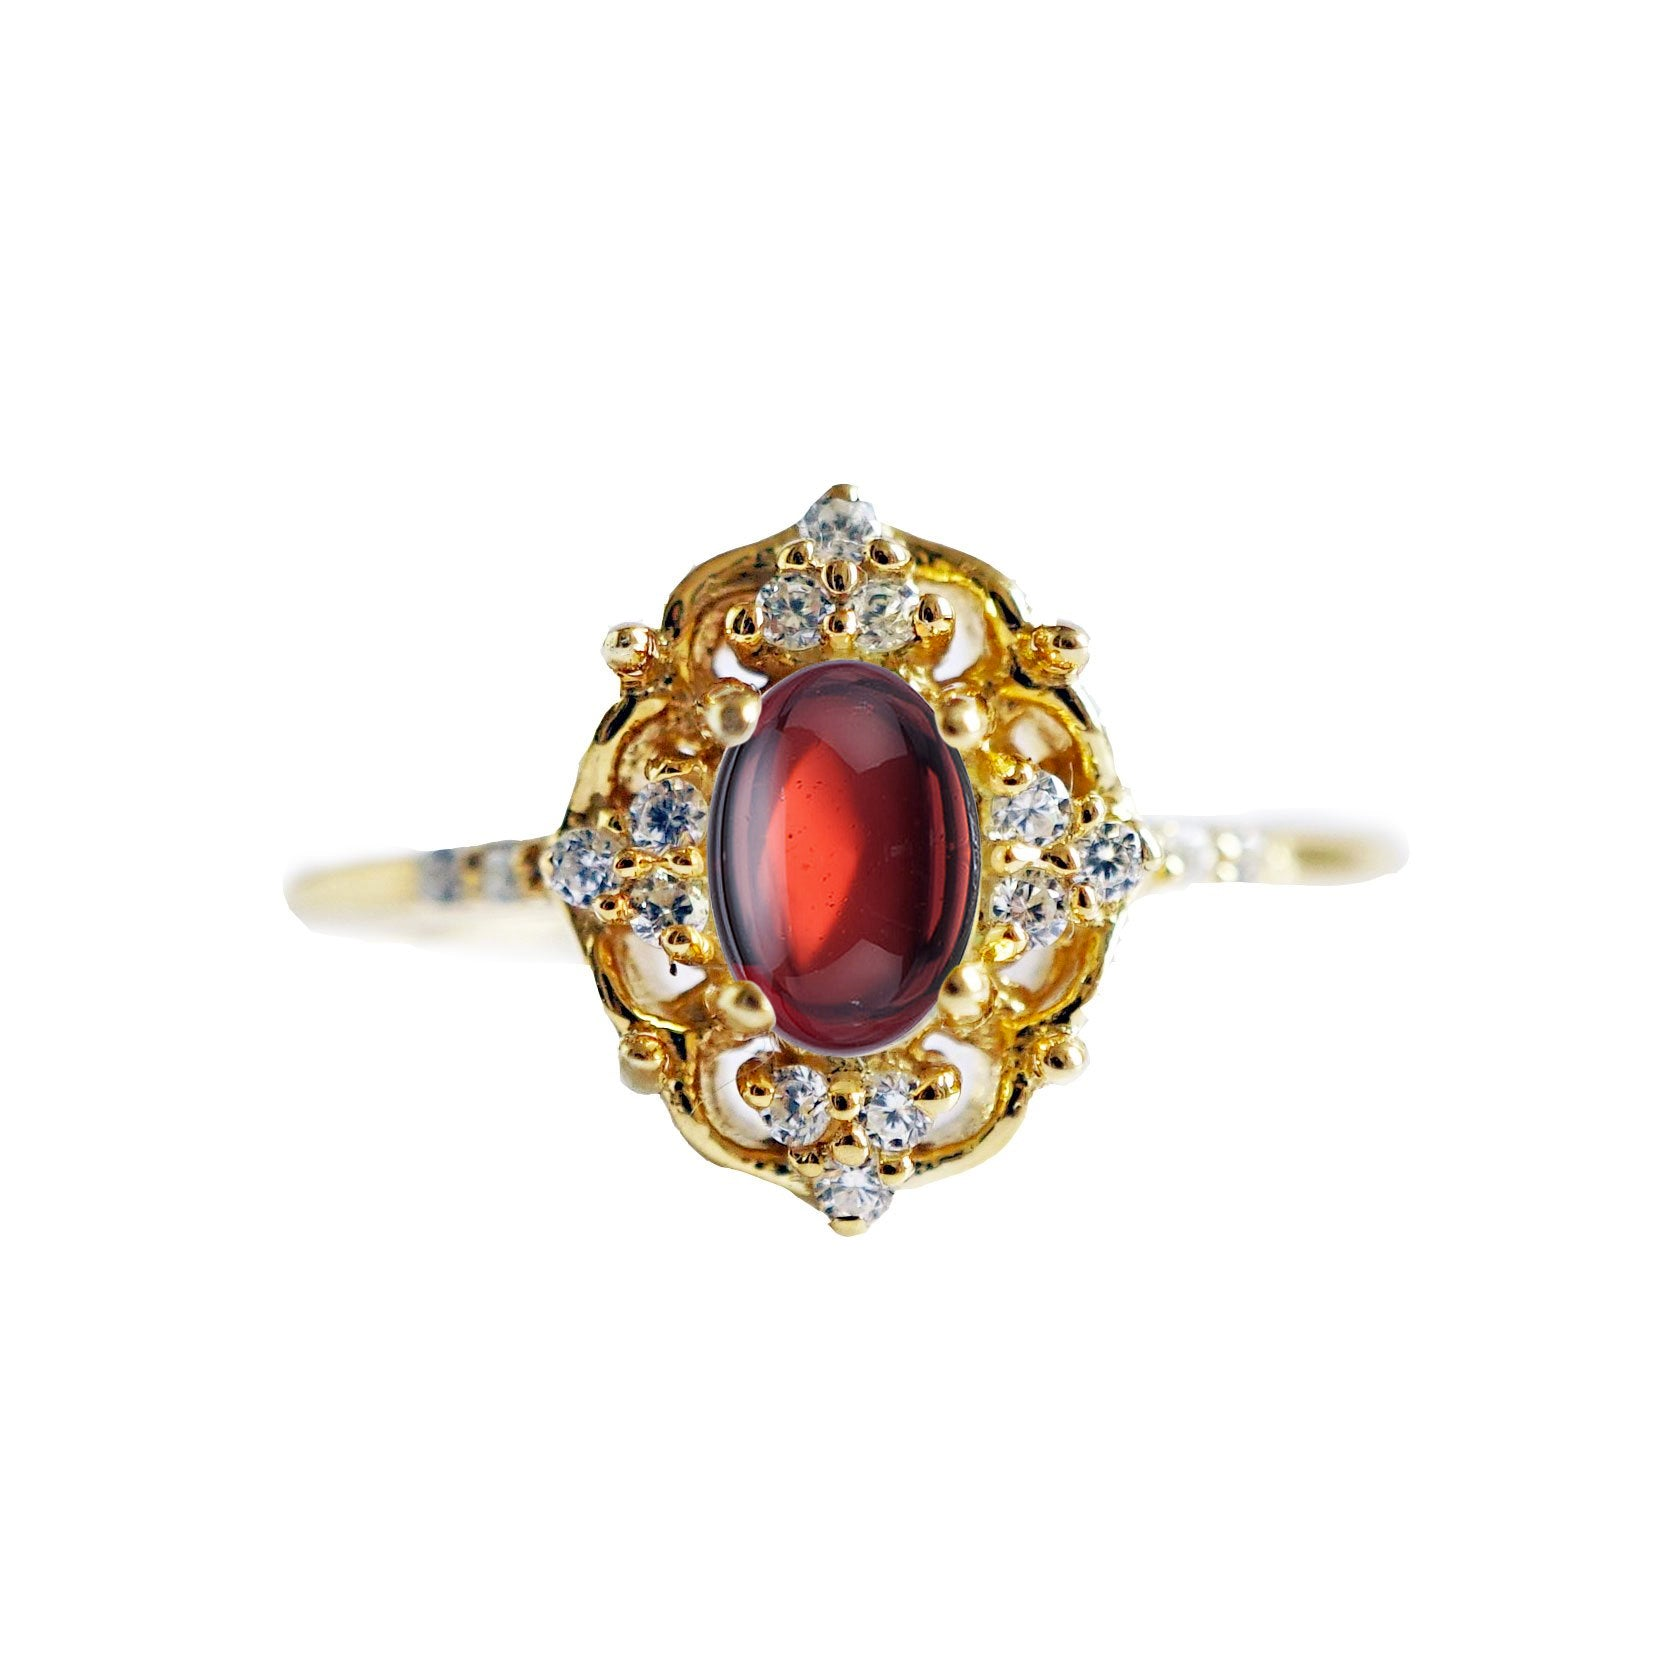 Cosmic Garnet Ring - Tippy Taste Jewelry